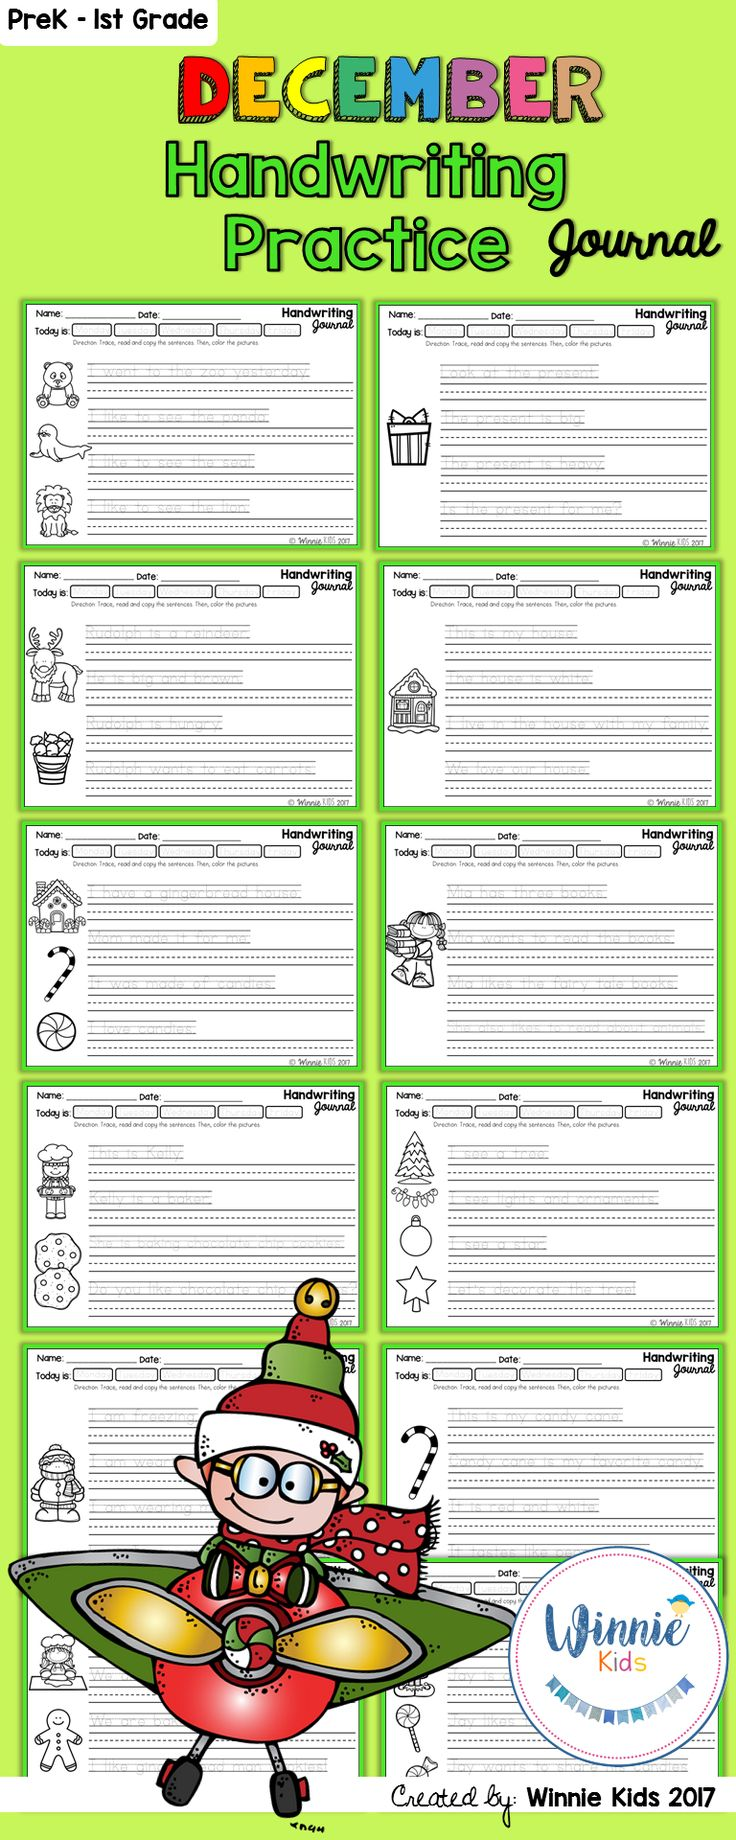 Worksheet Handwriting Practice Sentences best 25 handwriting practice sentences ideas on pinterest december journal